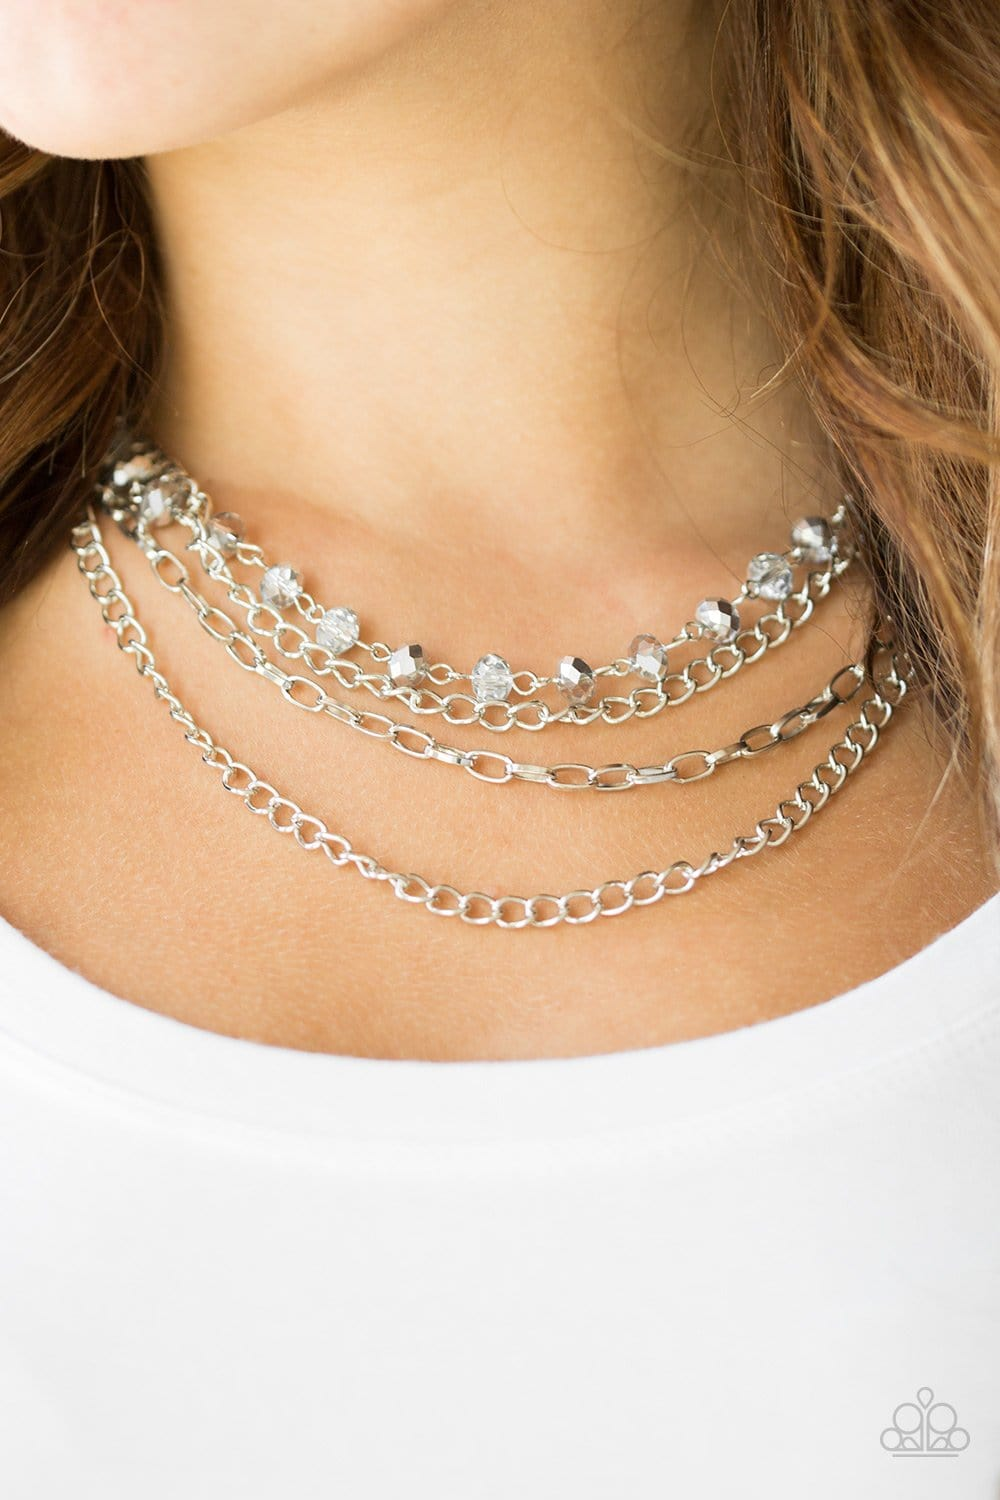 Extravagant Elegance - Silver - Jewels N' Thingz Boutique